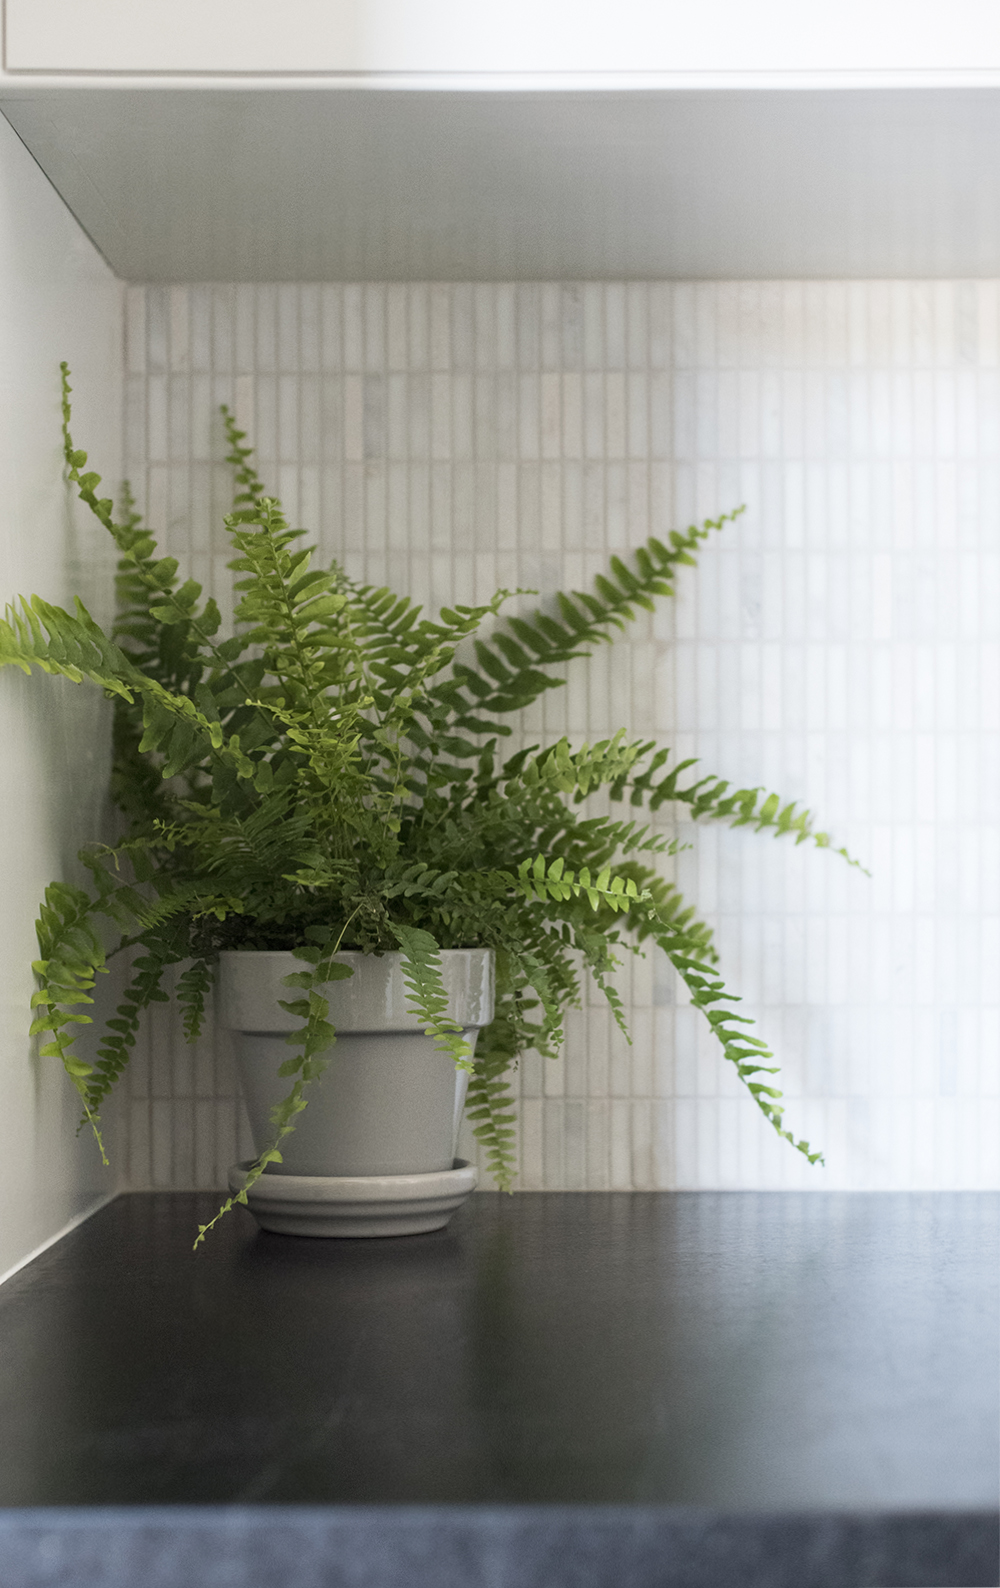 Best of Etsy : Planters - roomfortuesday.com